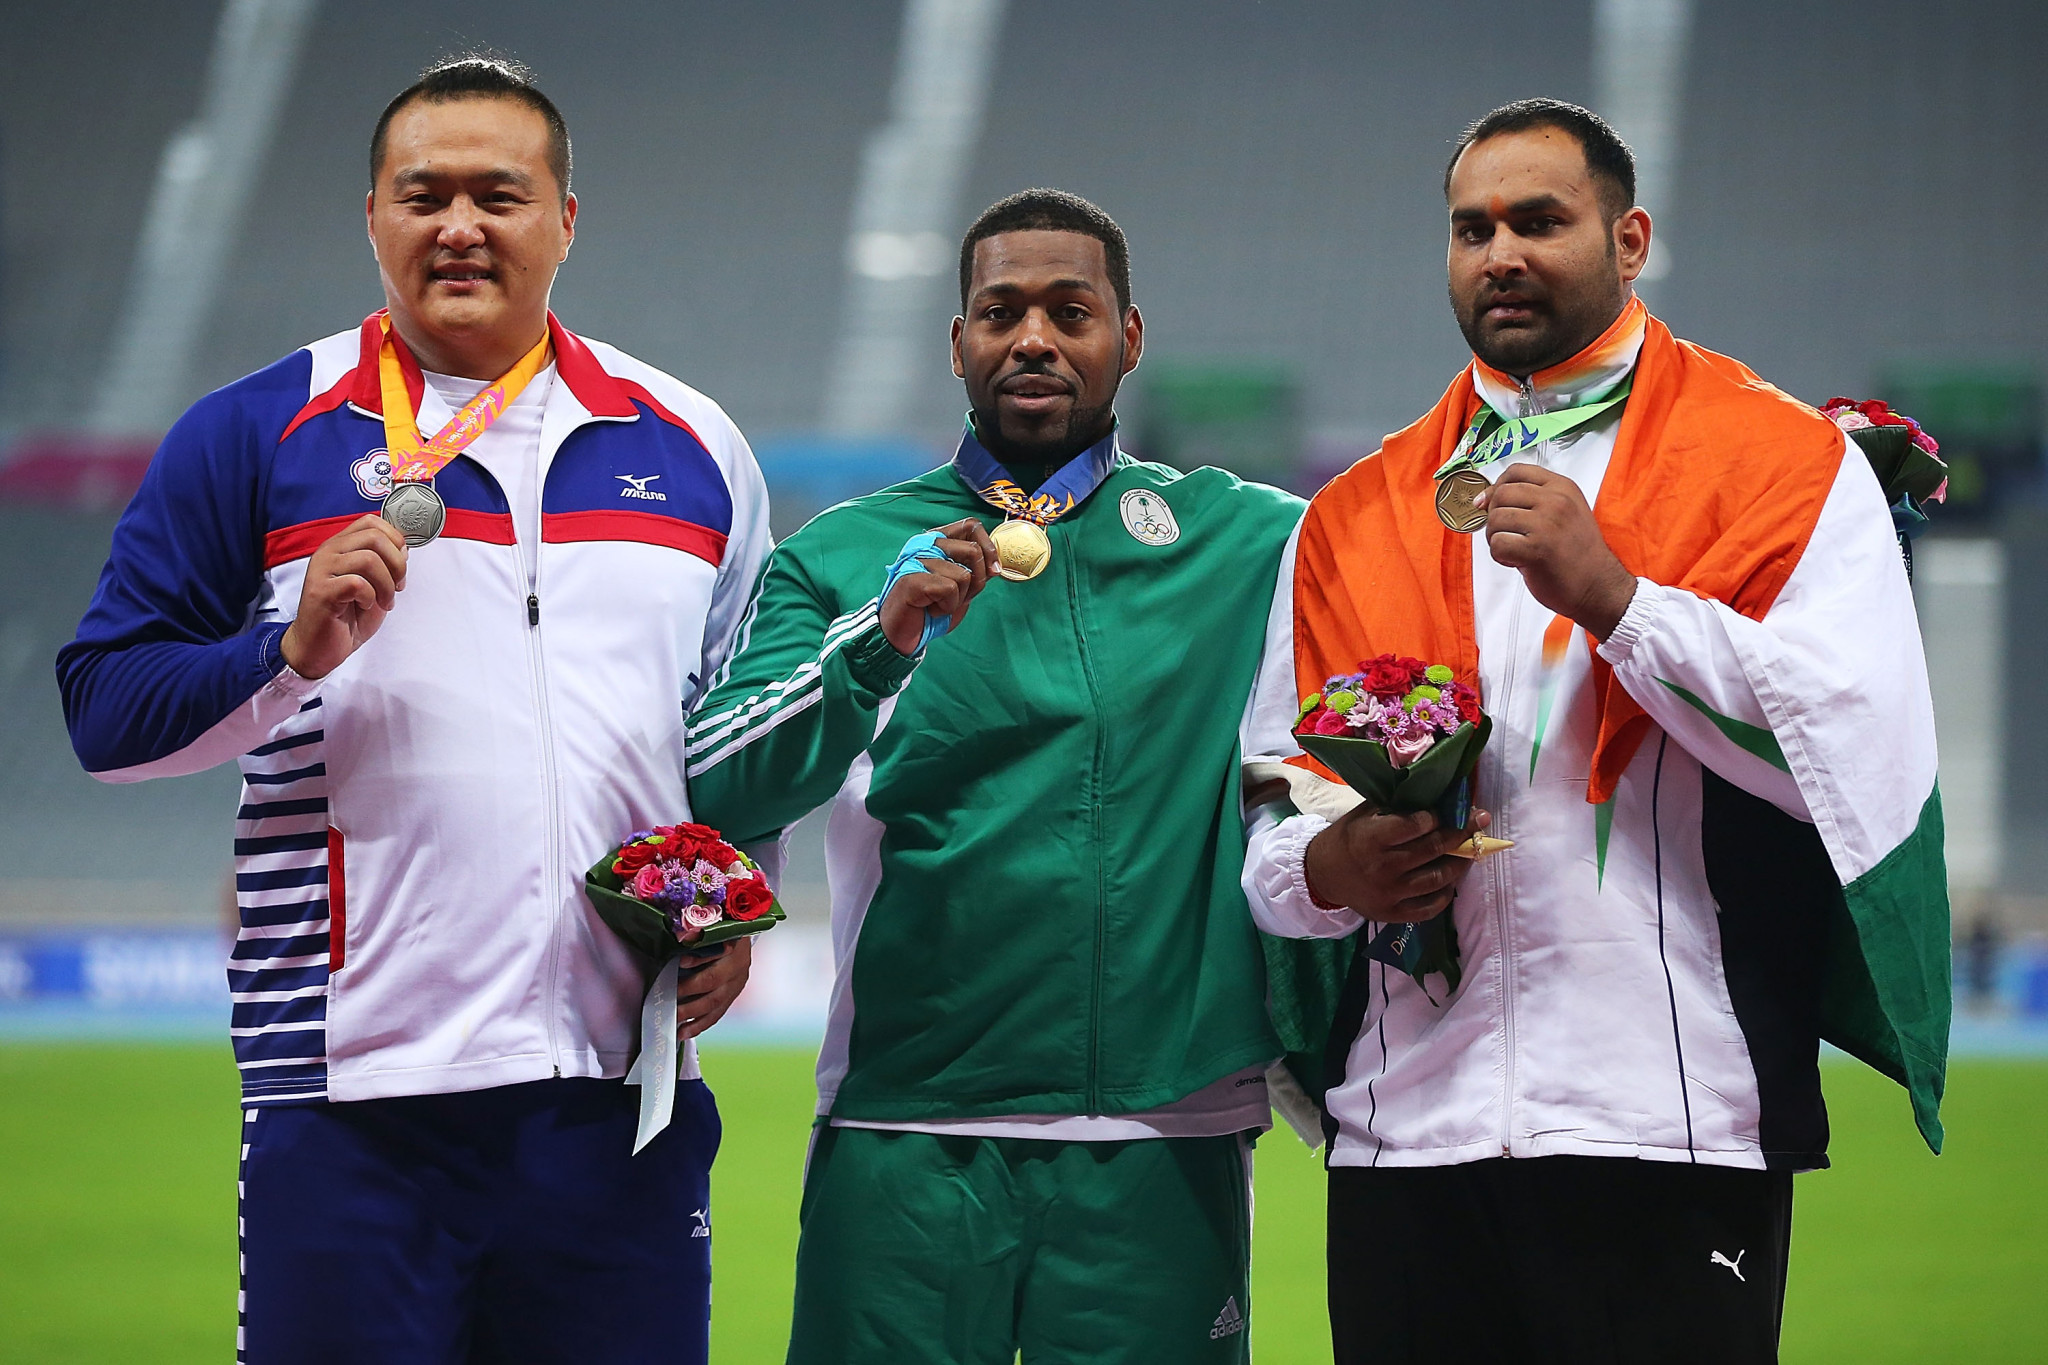 Inderjeet Singh, right, won a bronze medal at the 2014 Asian Games ©Getty Images